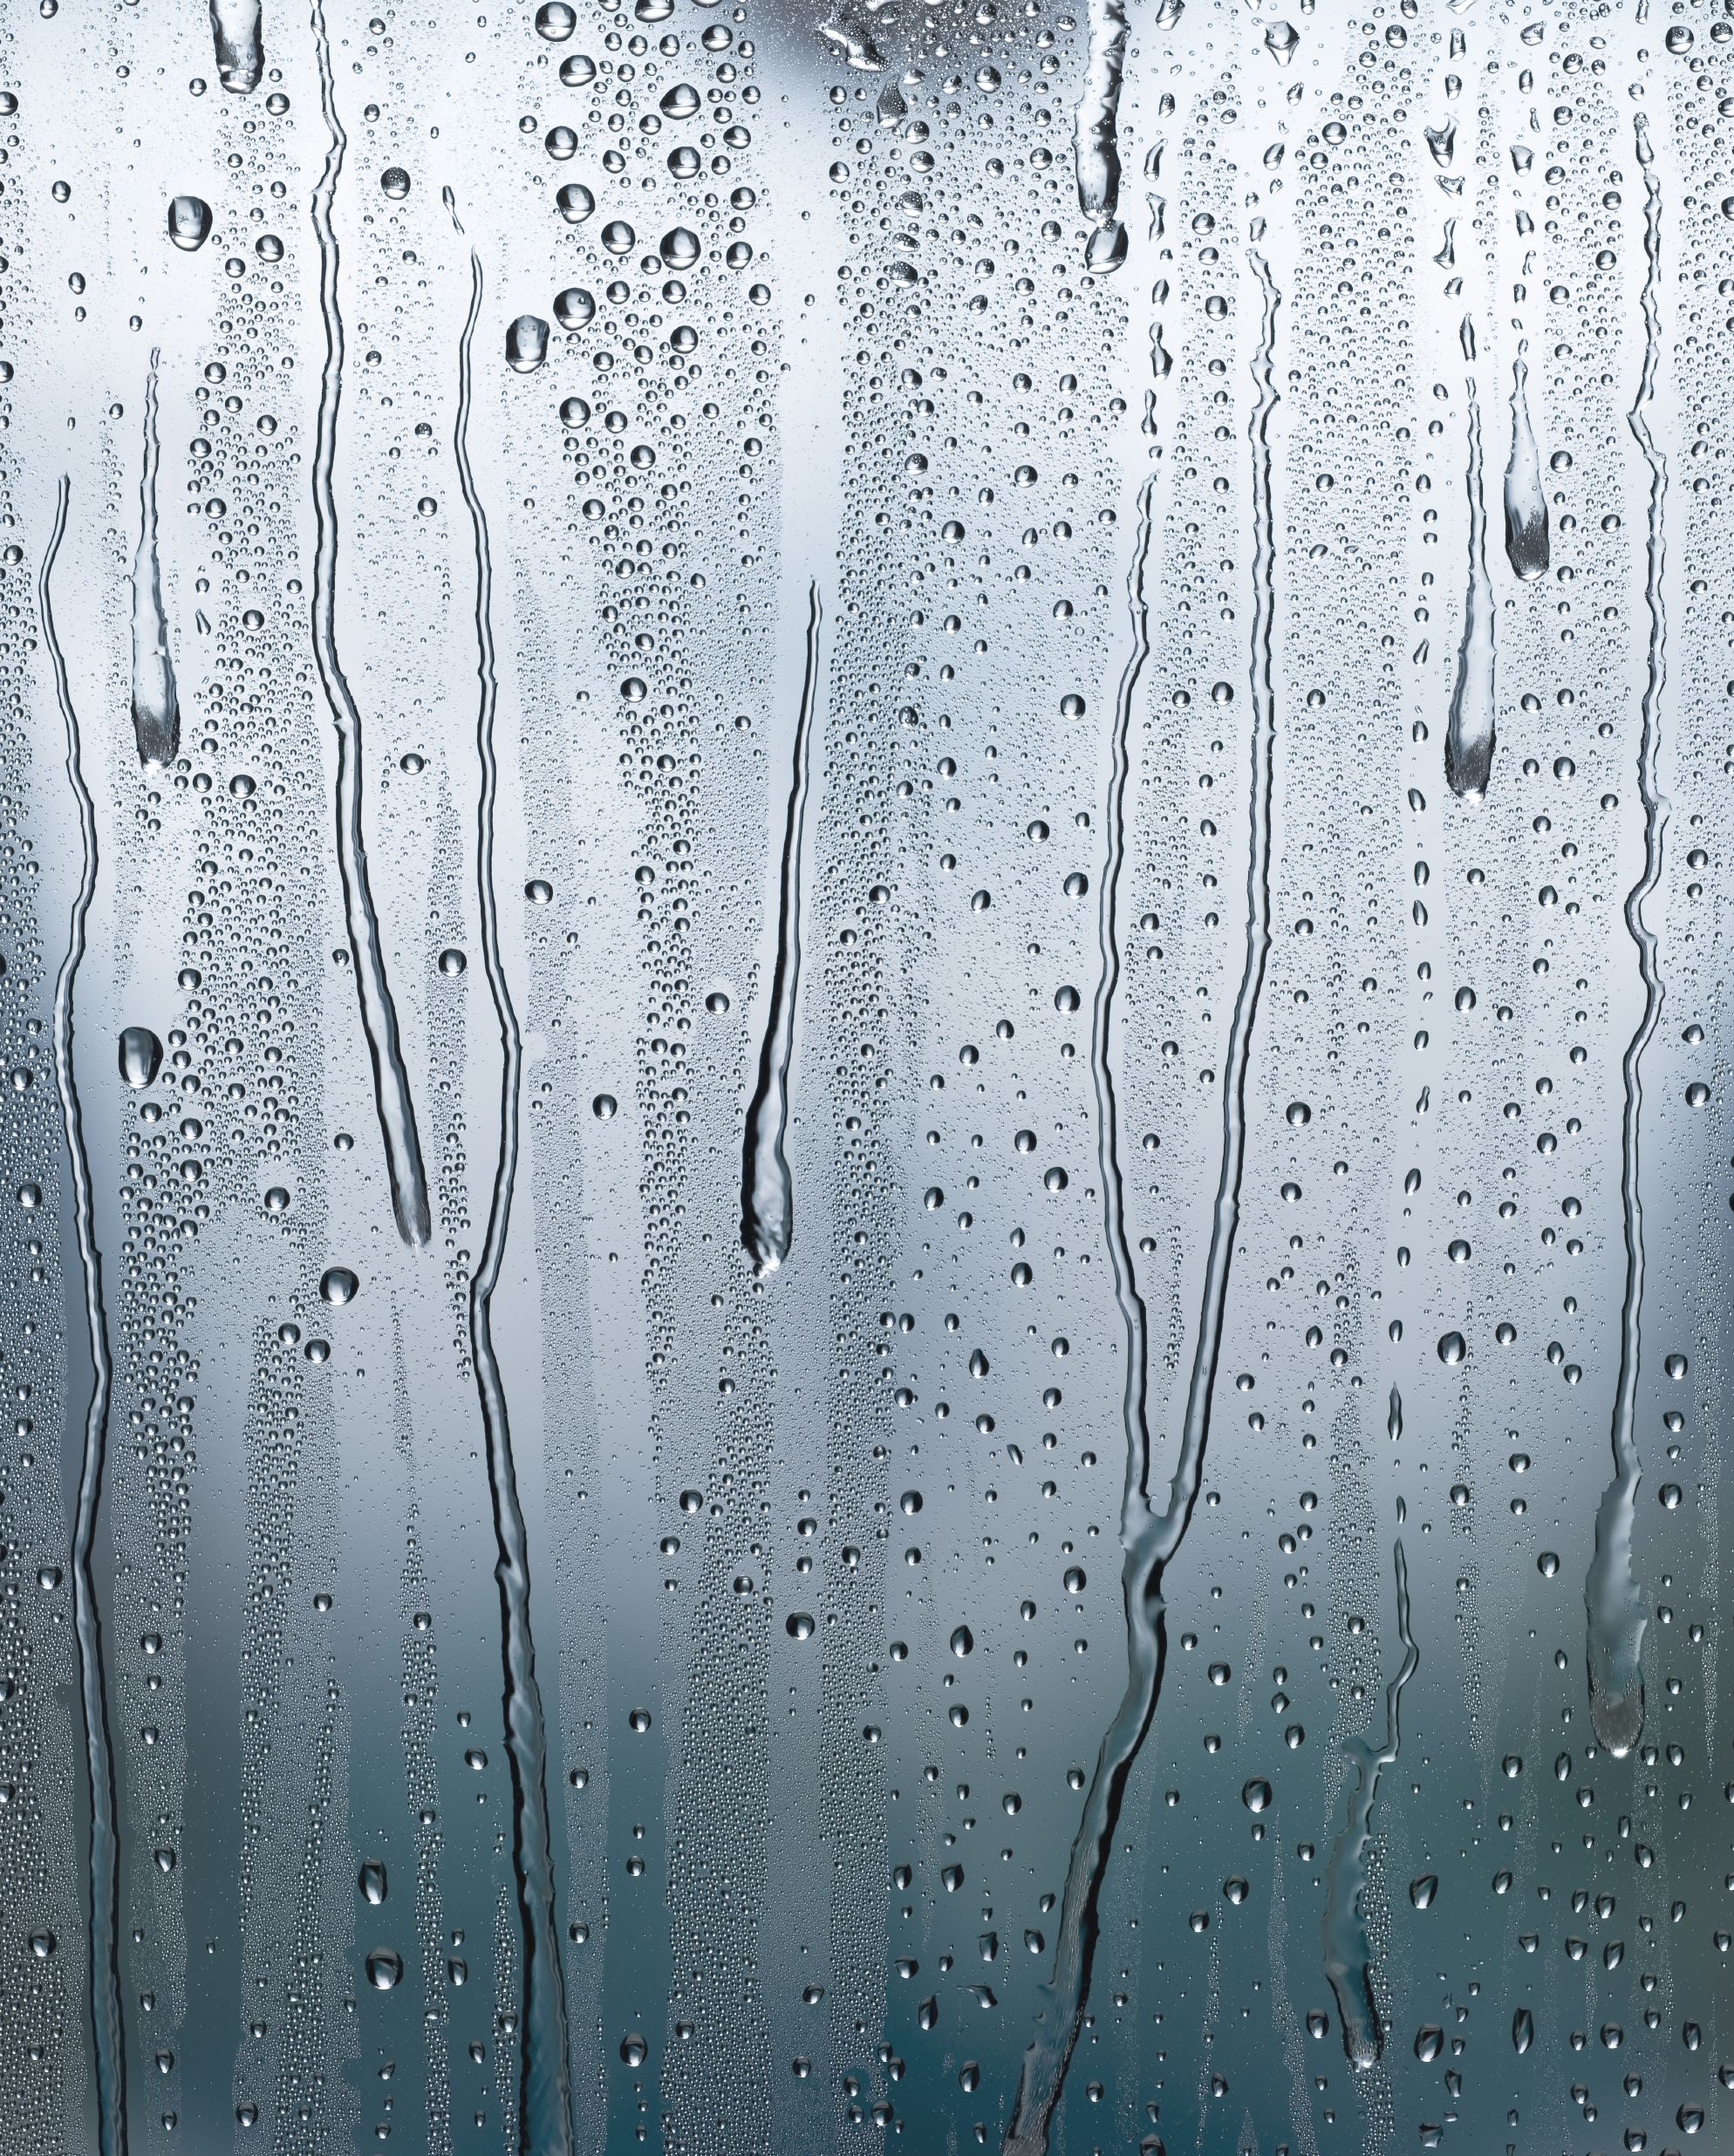 Condensation runs down a window pane in front of a blurred image of the outside. Stitched image from two files